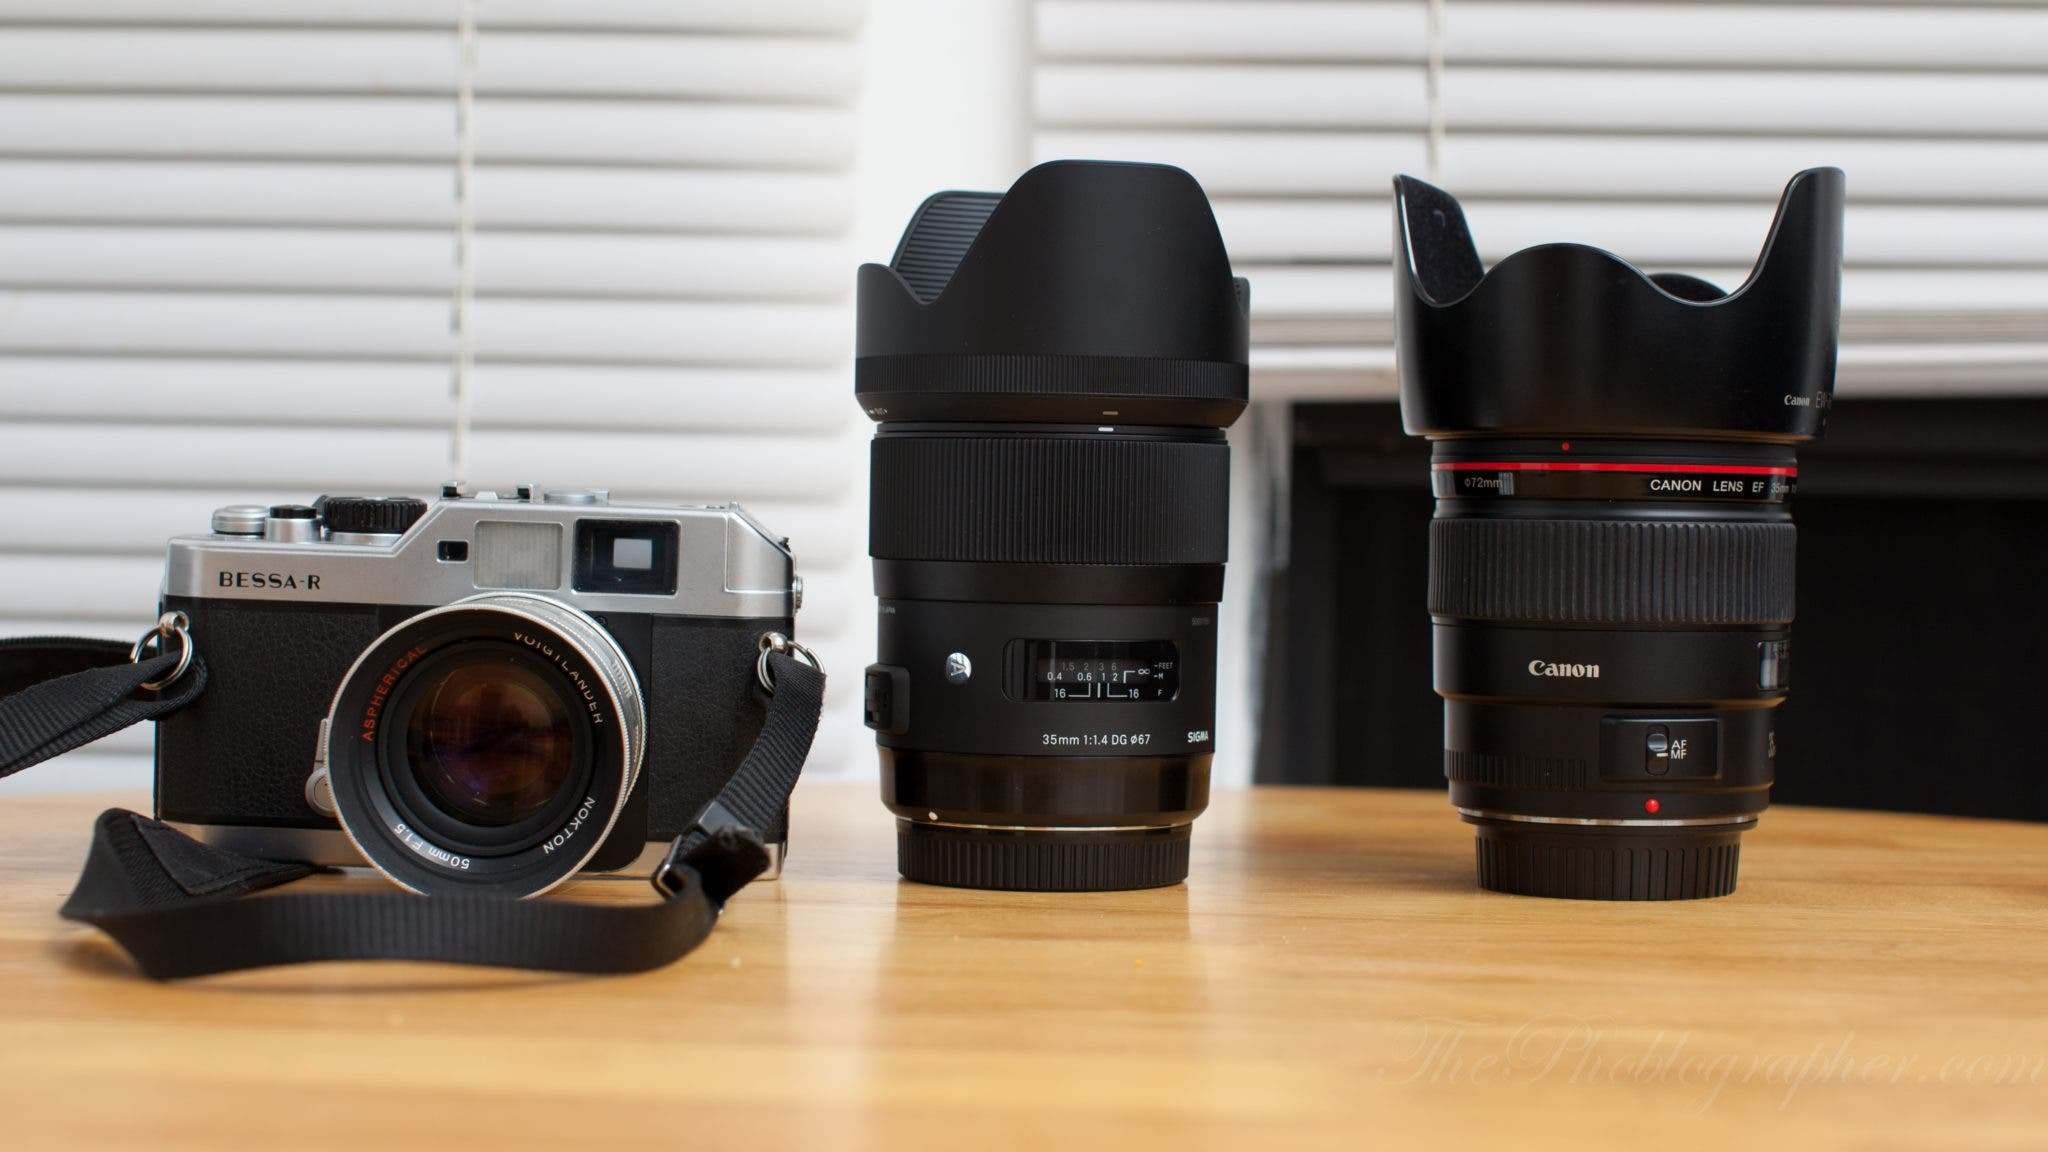 Quick Informal Lens Comparison: Canon 35mm f1.4 L vs Sigma 35mm f1.4